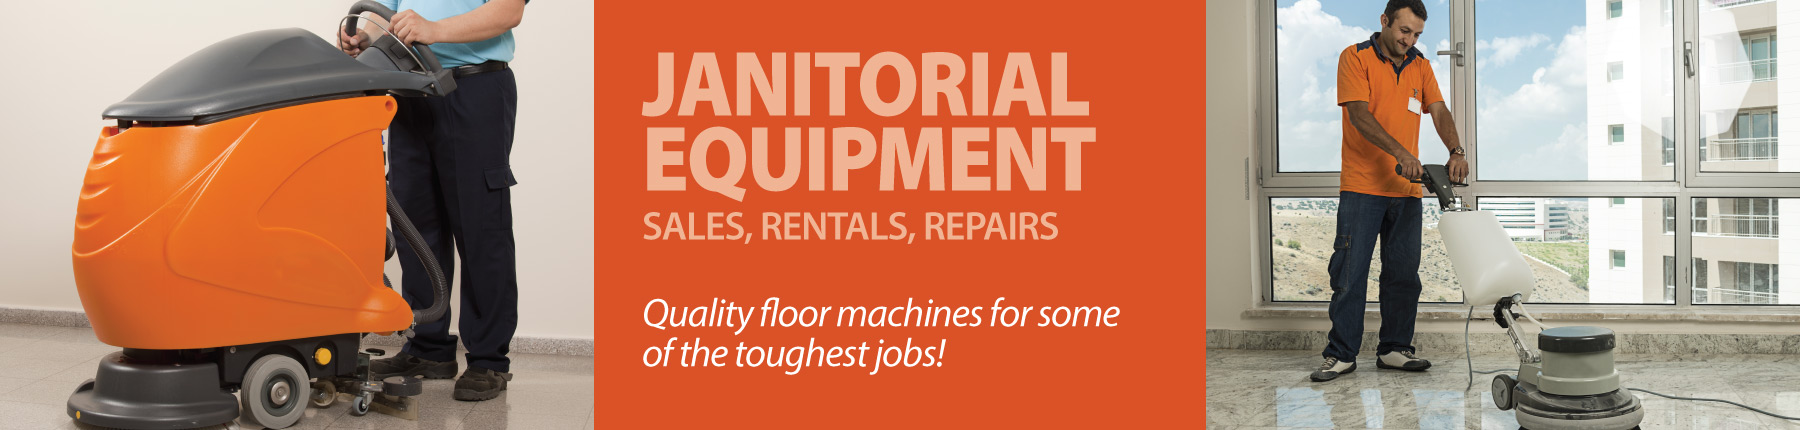 Home Slider - Janitorial Equipment